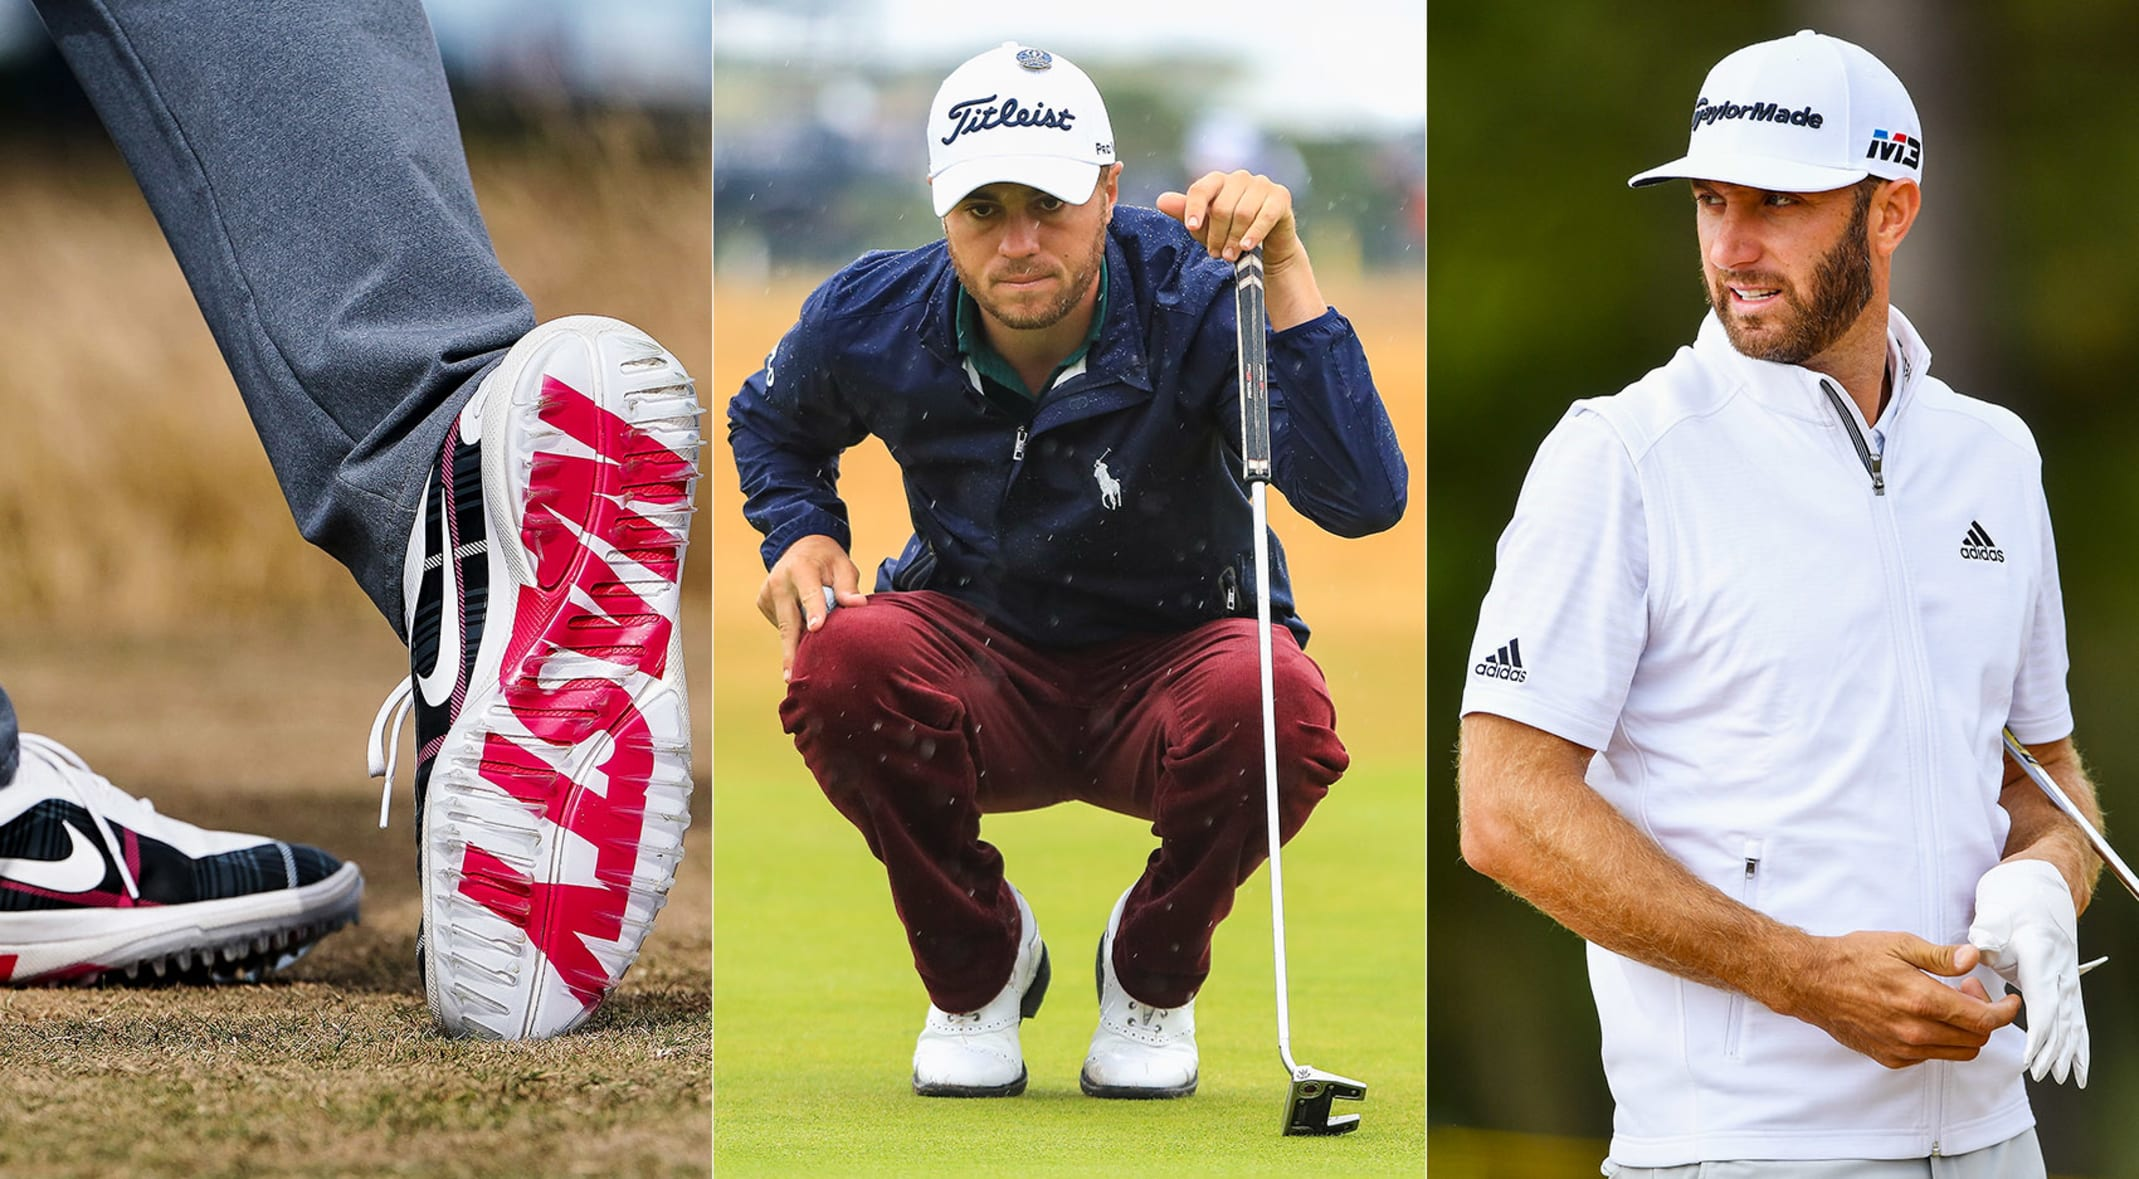 a0c324c673f98 The Open Championship gave us a sneak peek at the biggest trends hitting  the fairways this